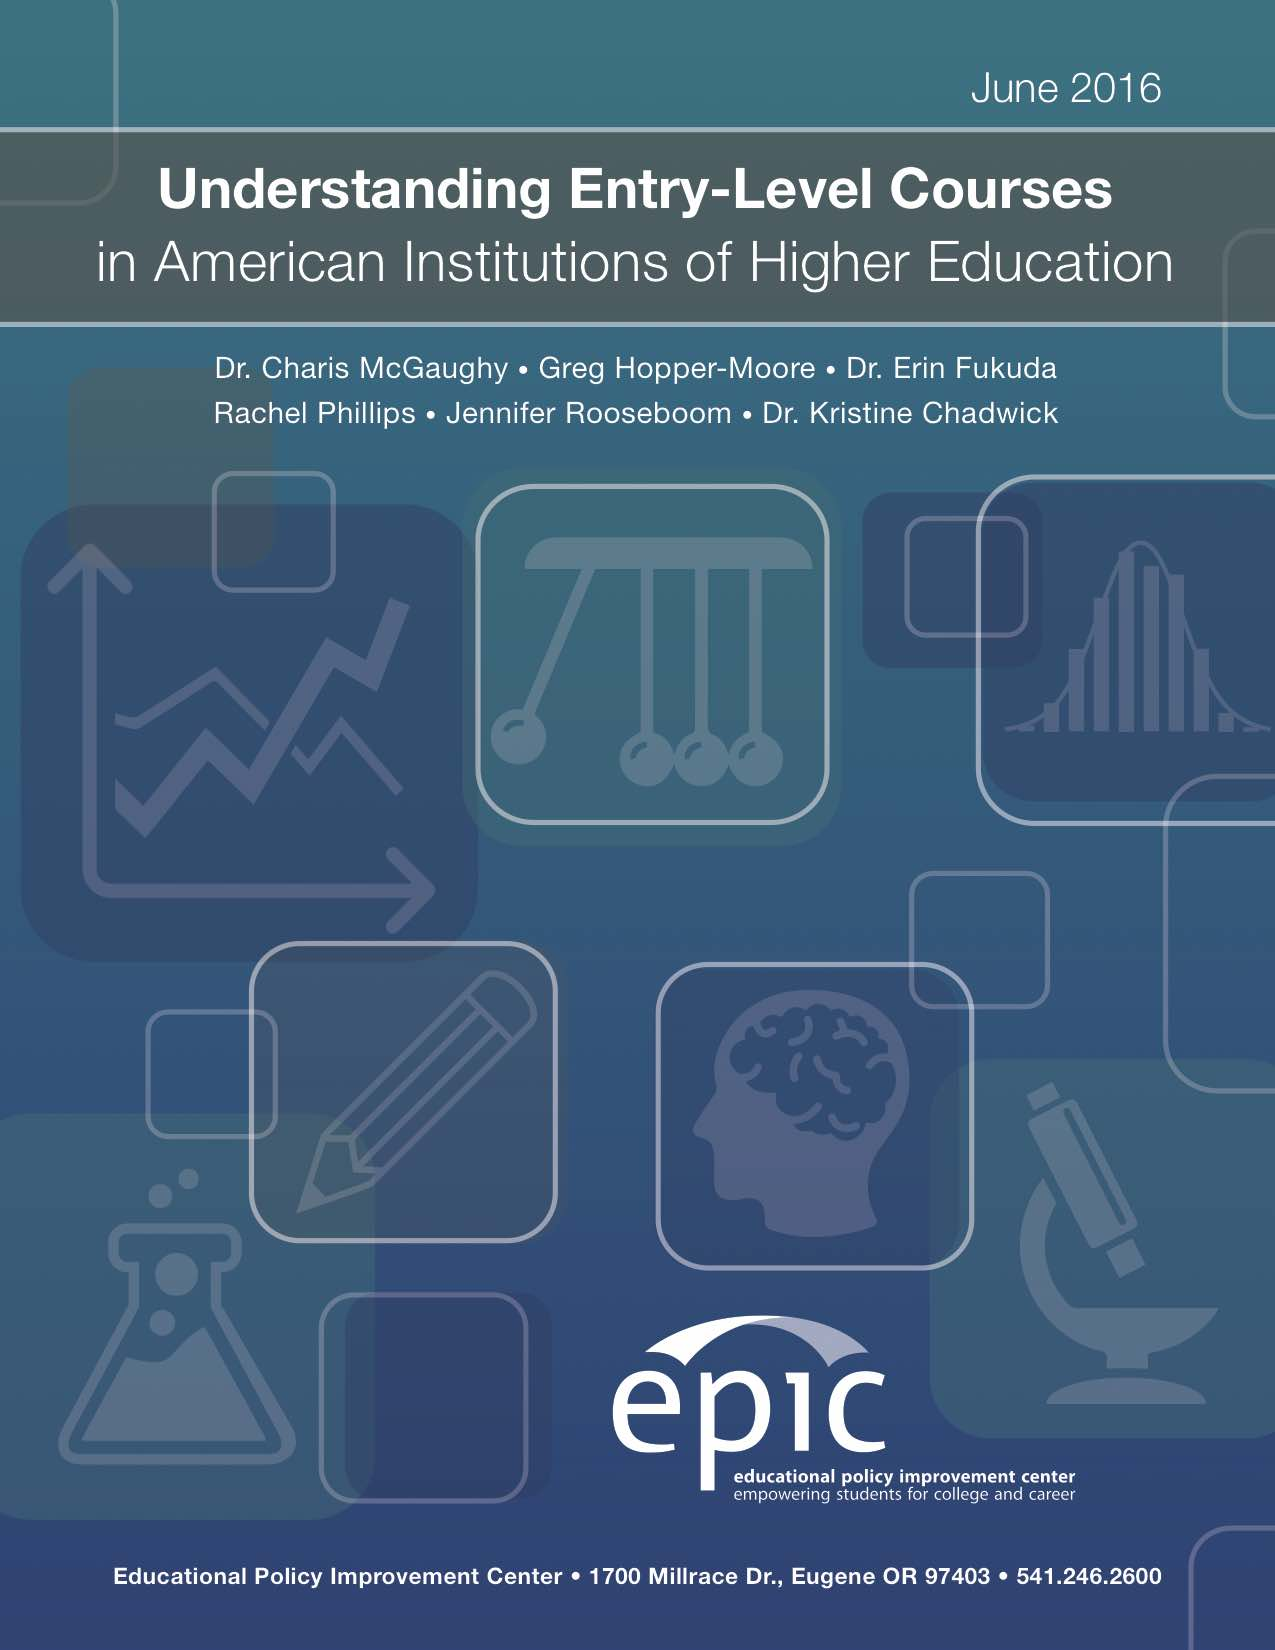 Understanding Entry-Level Courses in American Institutions of Higher Education